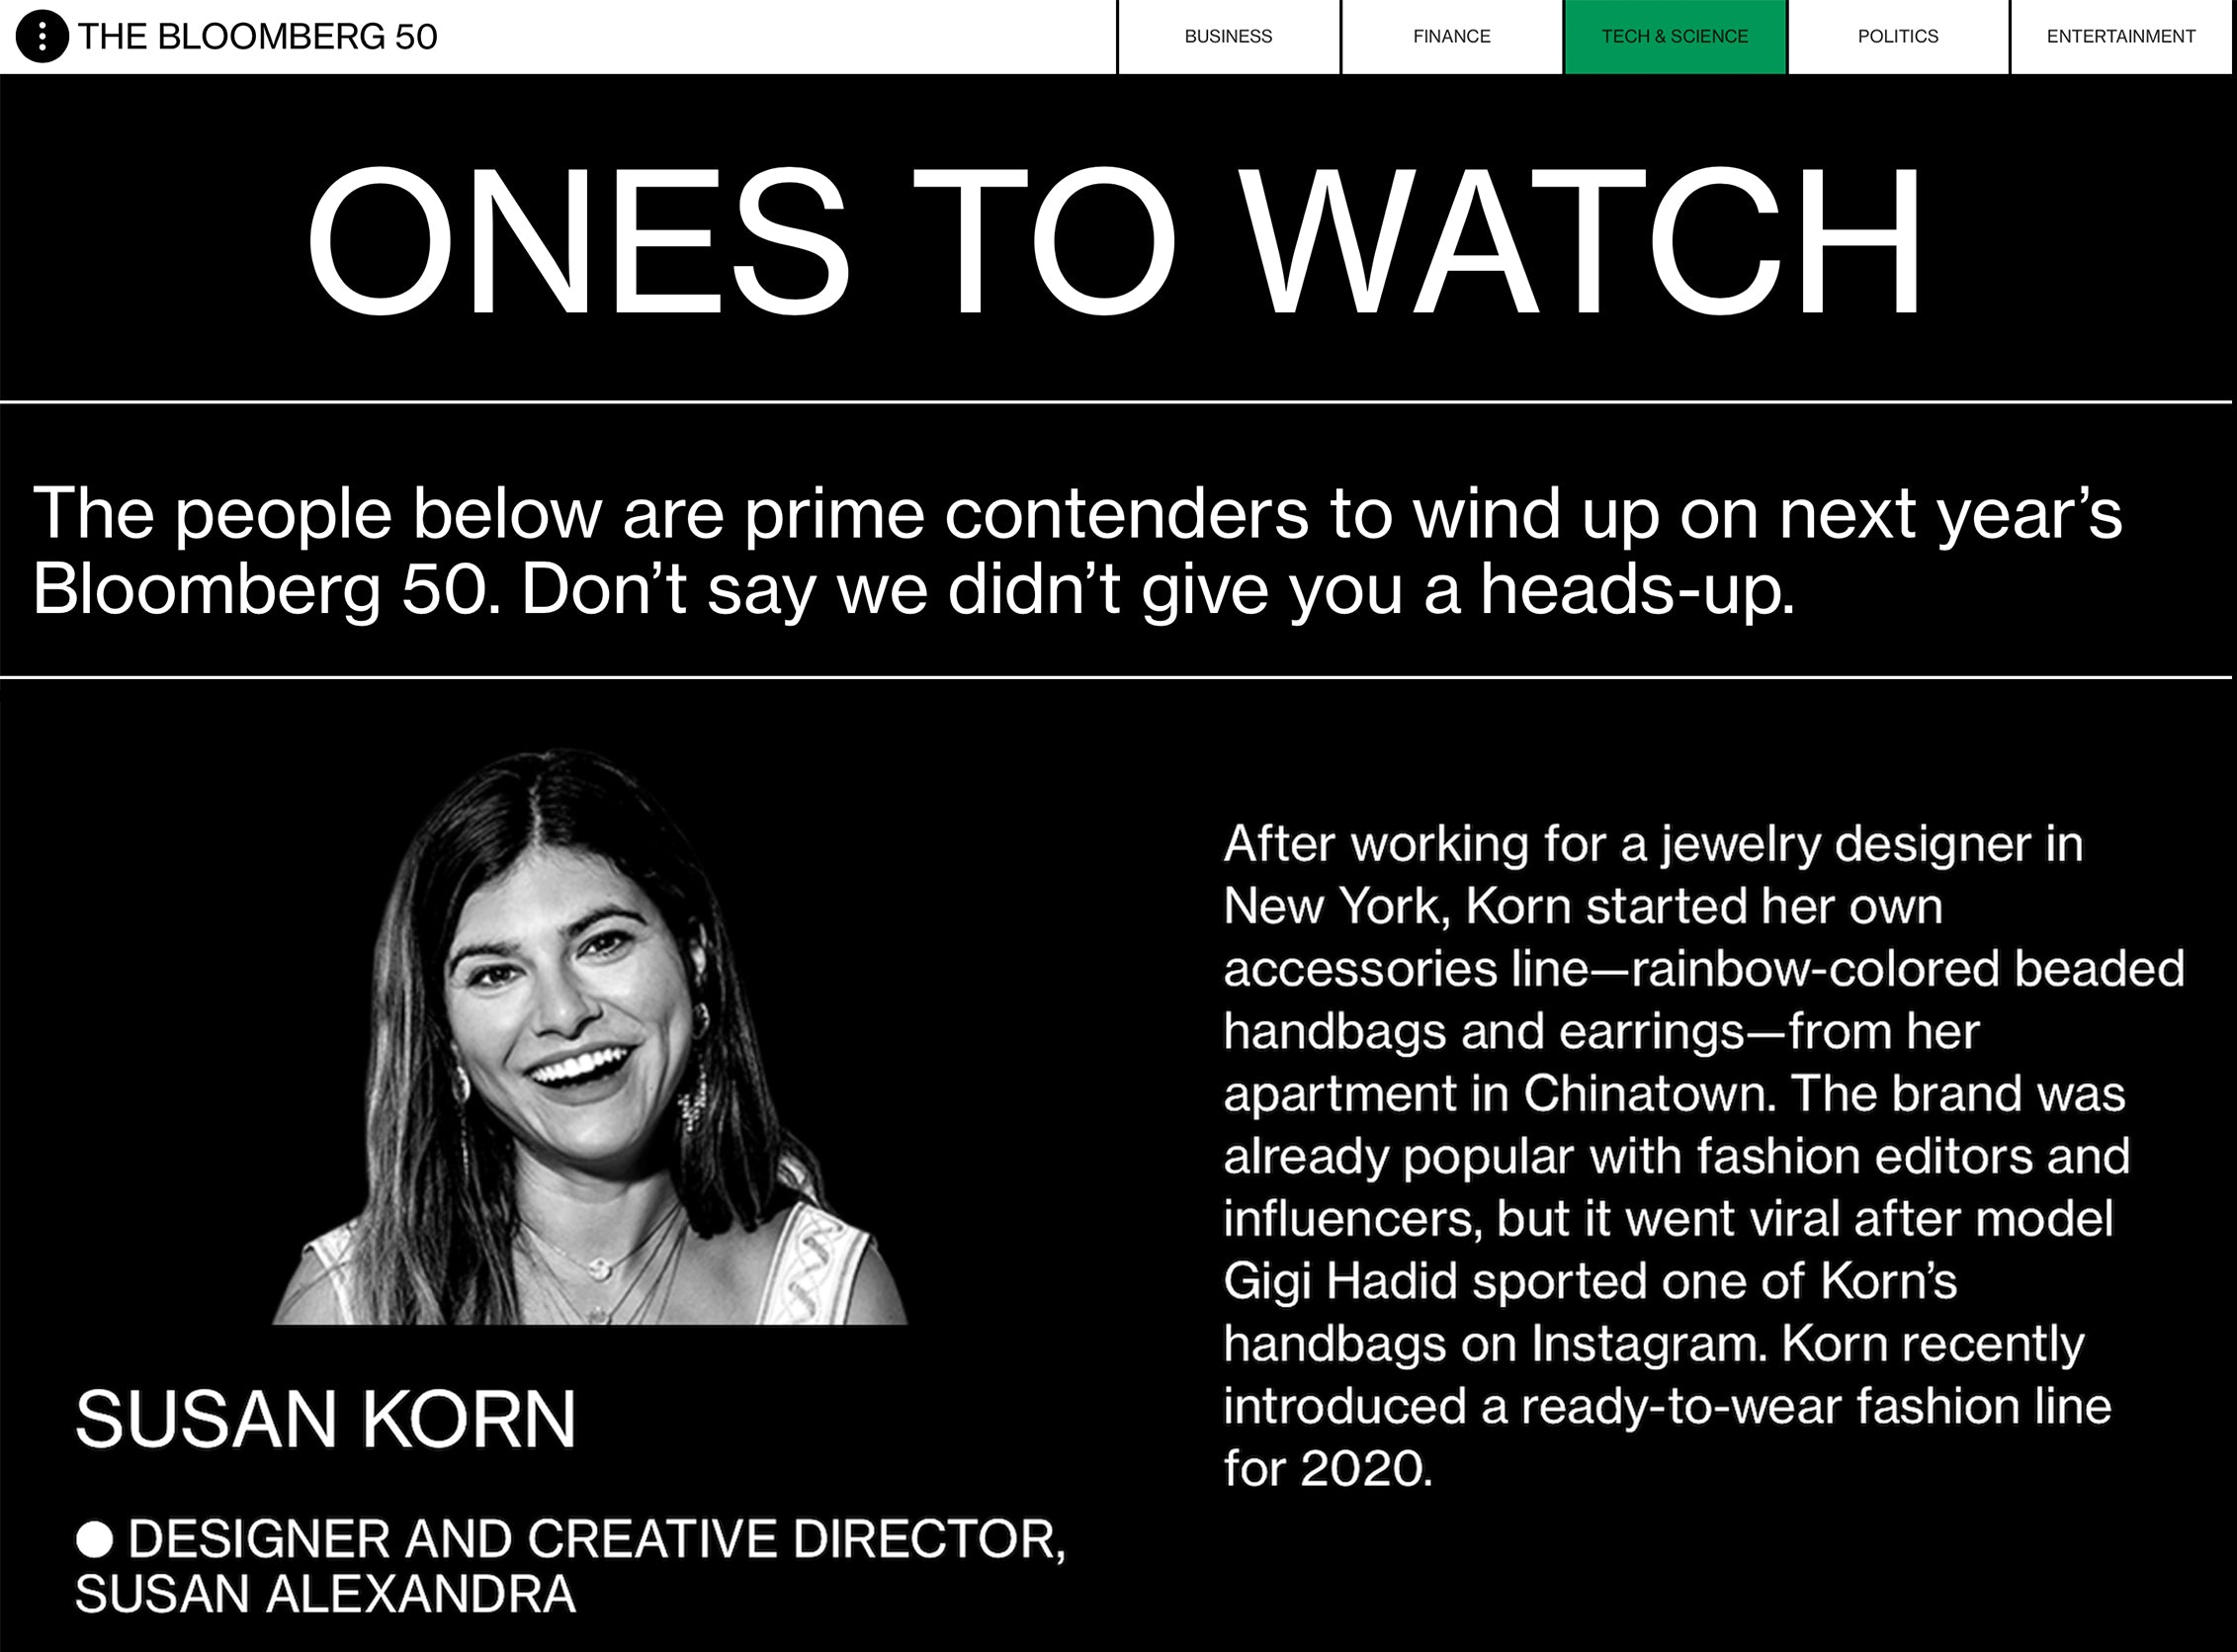 Susan Korn featured on Bloomberg's Ones to Watch